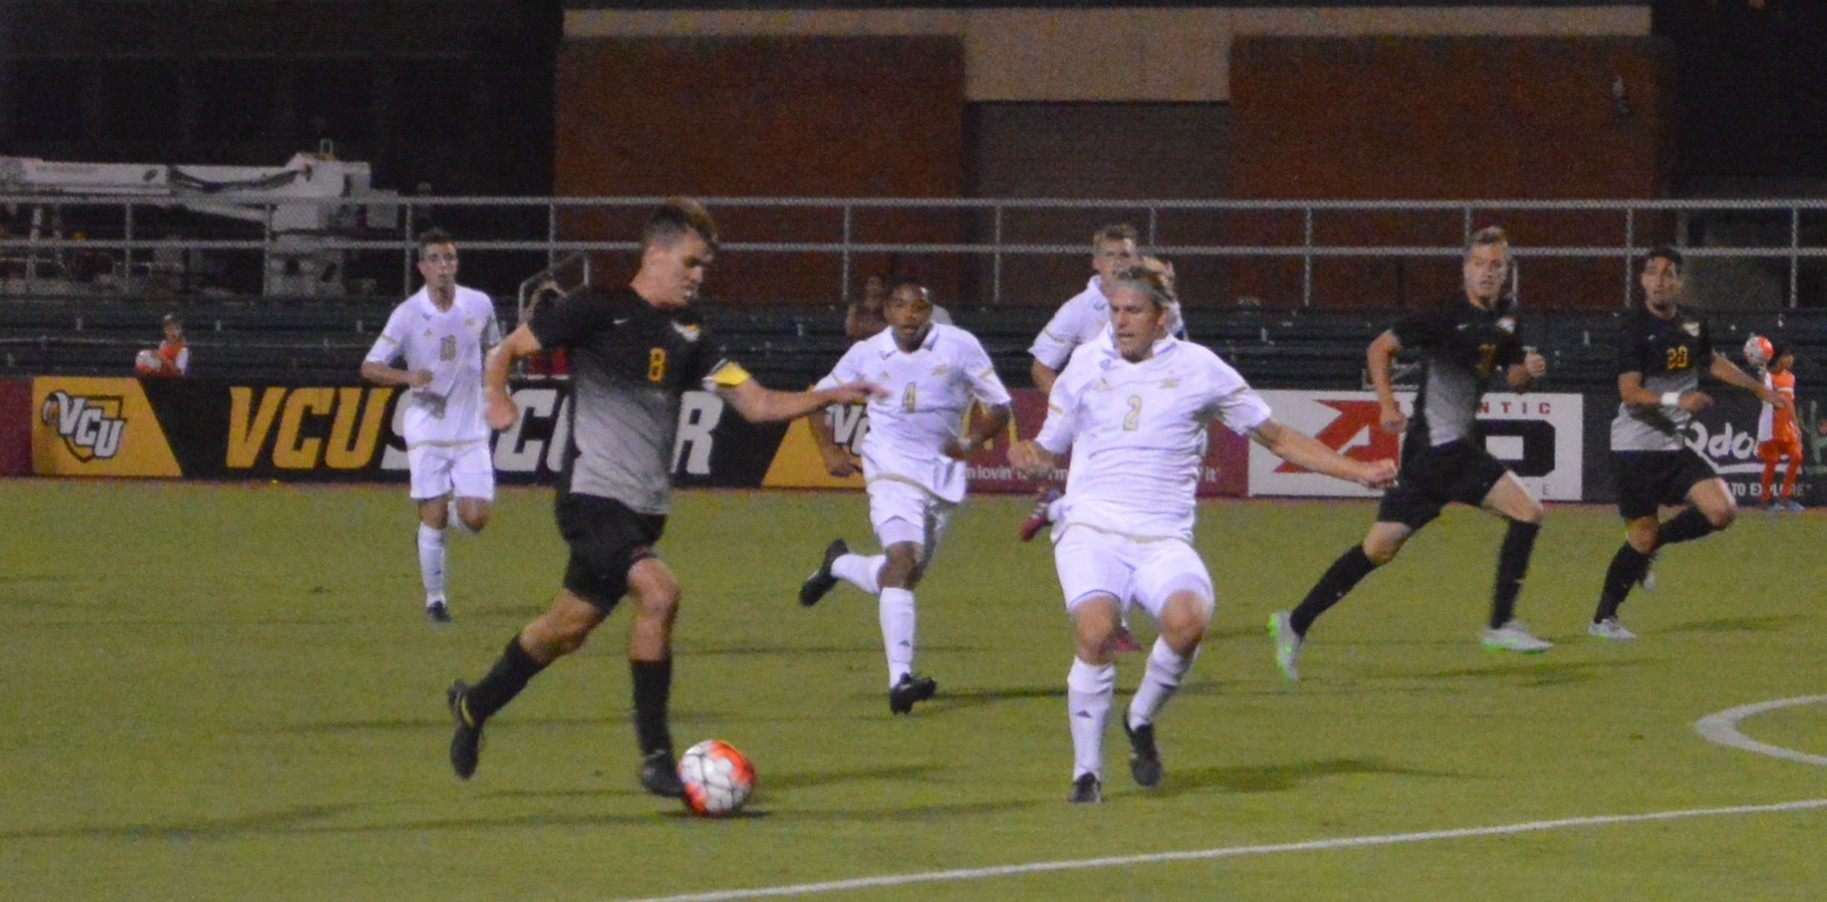 108 and Heartbreak: Macchione's Header lifts Akron past VCU